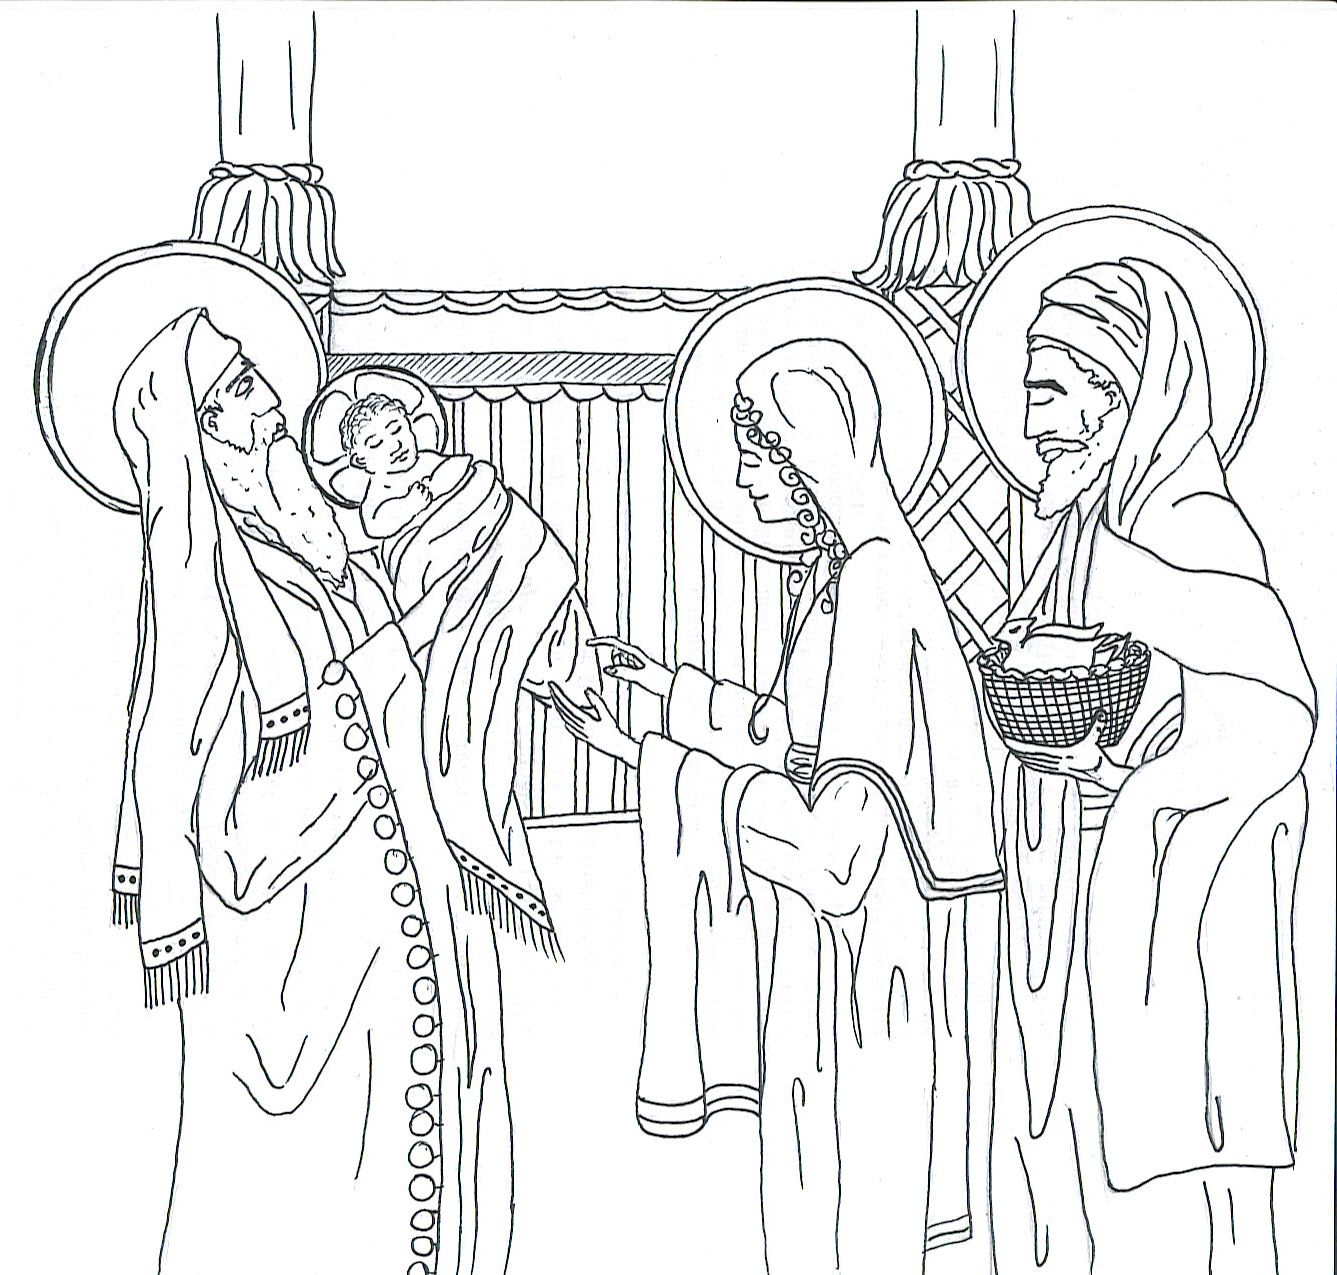 Catholic Coloring Page For Kids Of The Presentation In The Temple